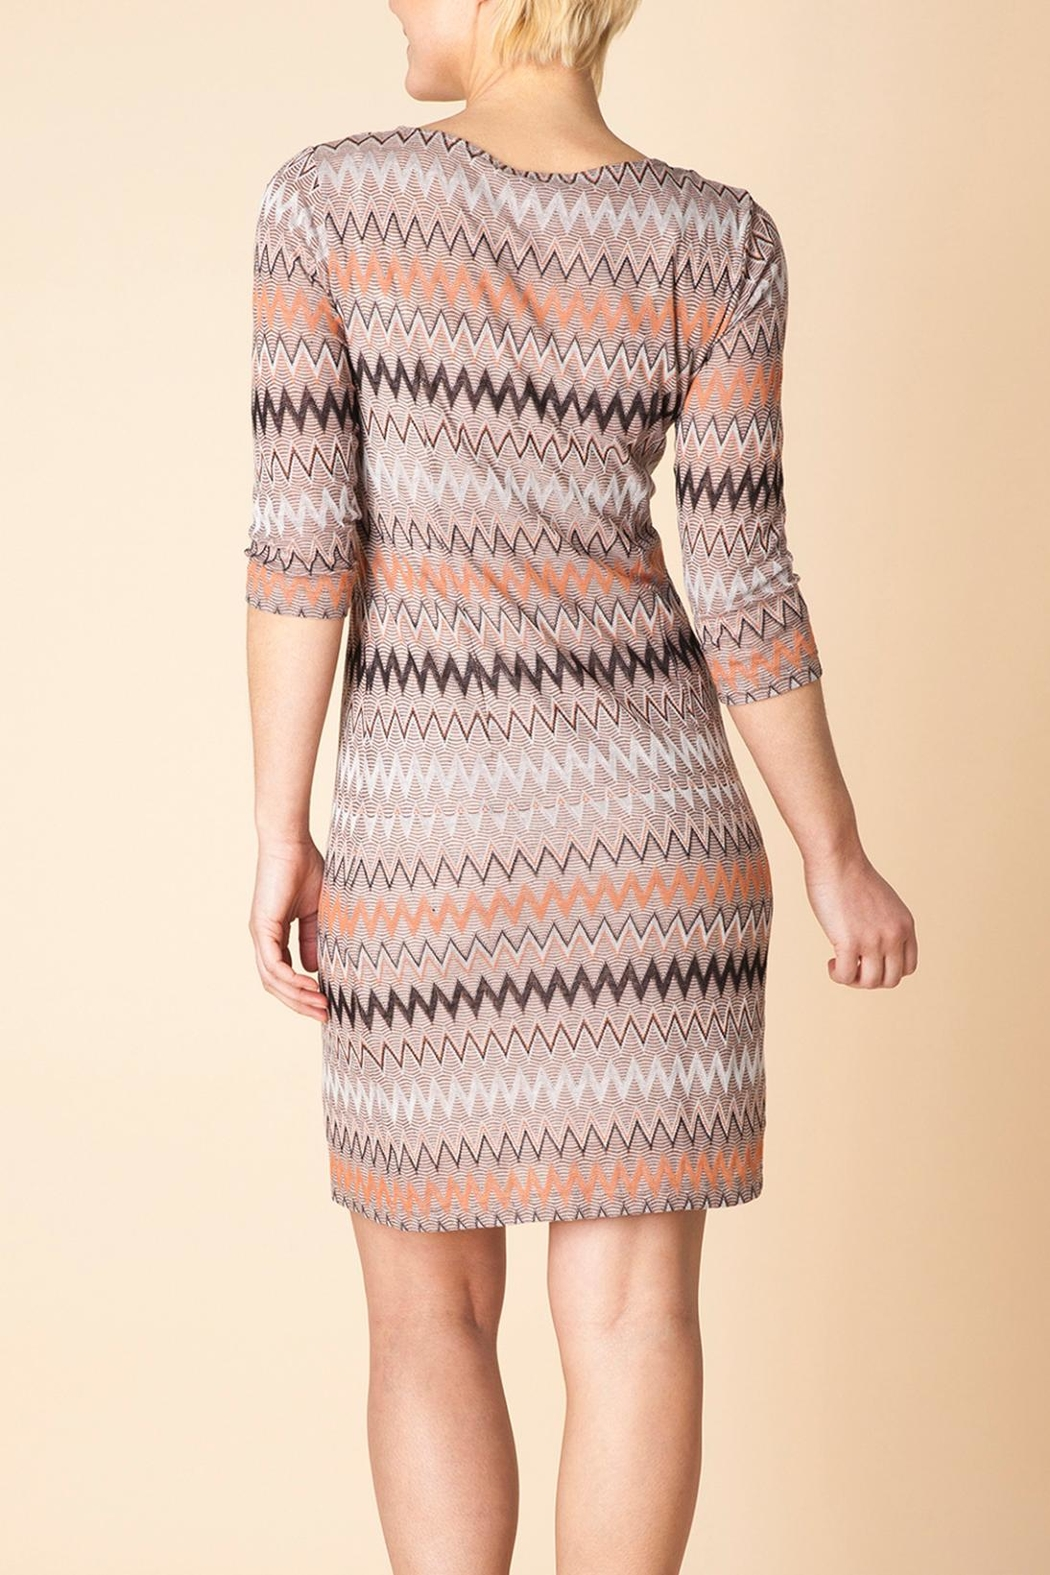 Yest Autumn Knit Dress - Front Full Image